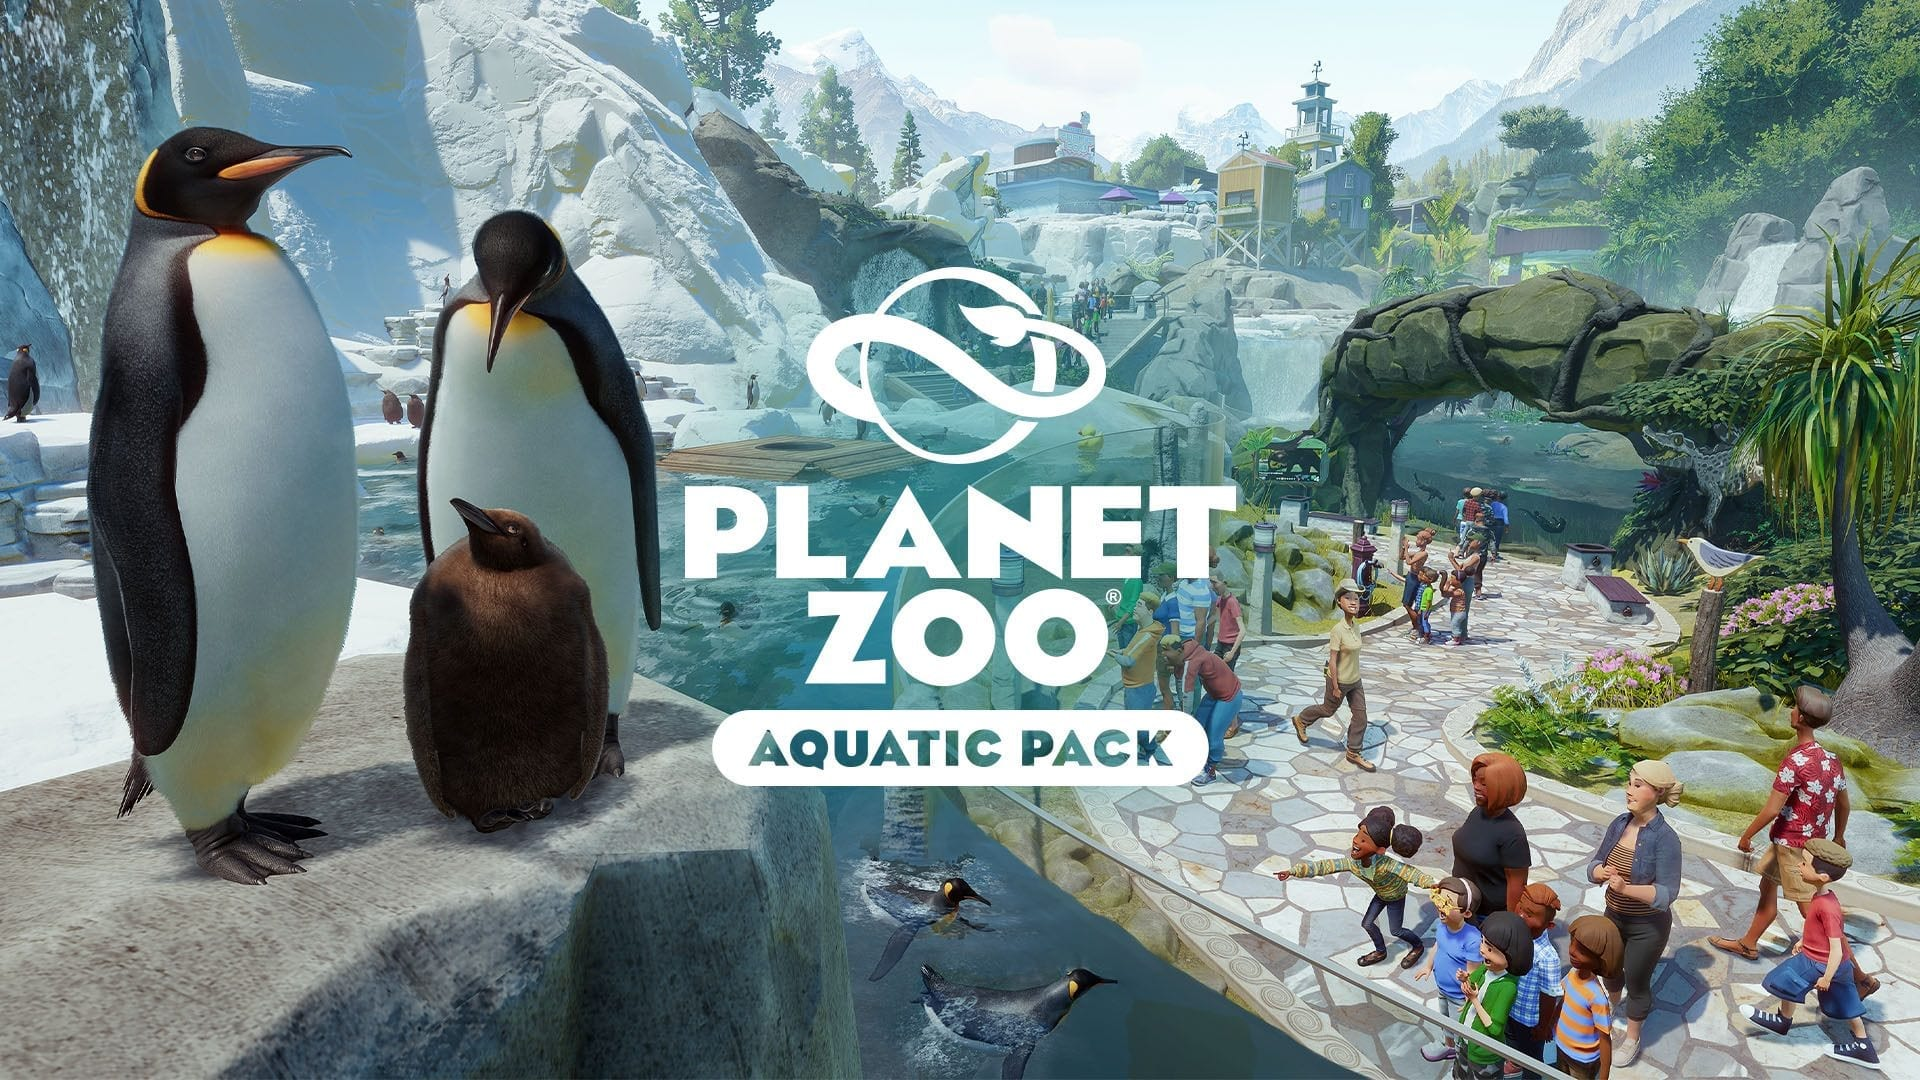 Say Hello To The New Aquatic Creatures In Planet Zoo!